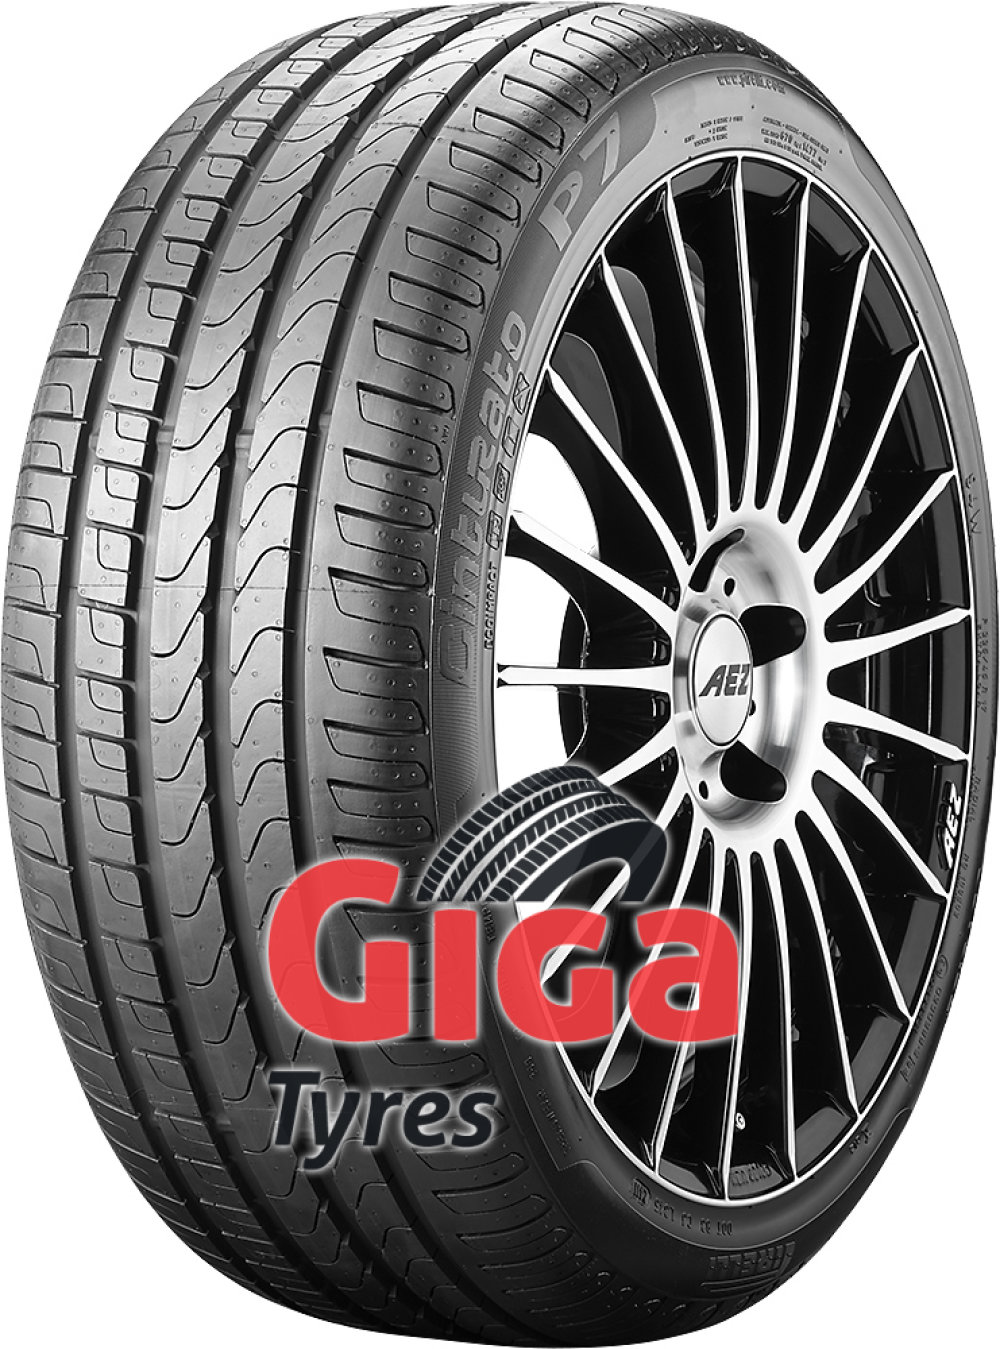 Pirelli Cinturato P7 runflat ( 225/45 R17 91W *, ECOIMPACT, with rim protection (MFS), runflat )